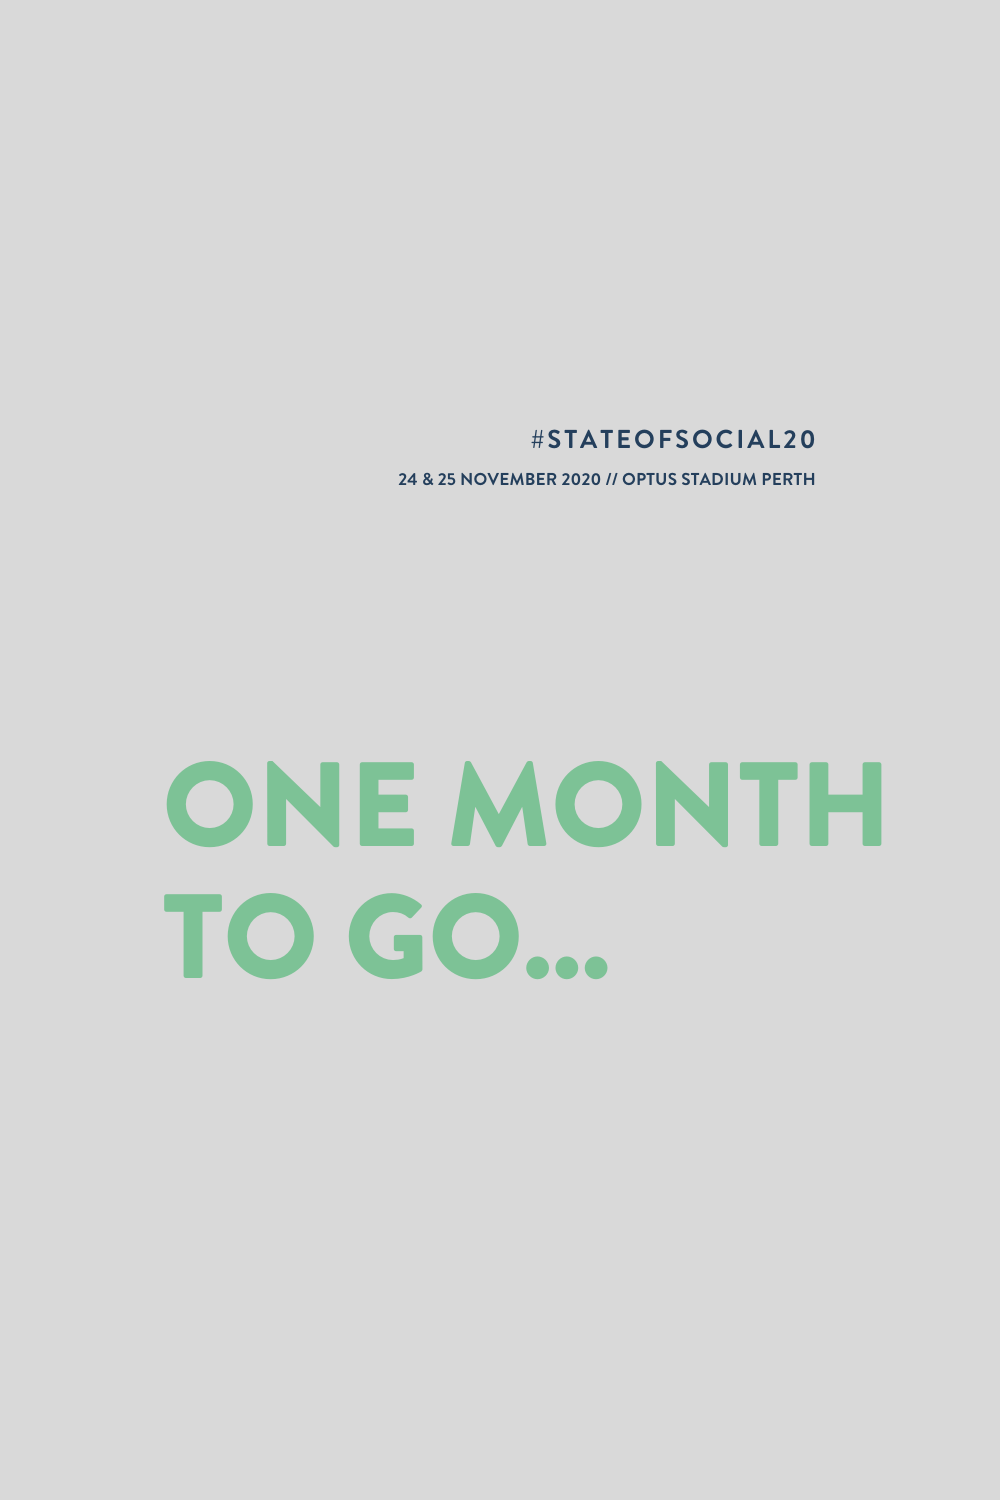 One month until State of Social '20 turns your 2020 frown upside down